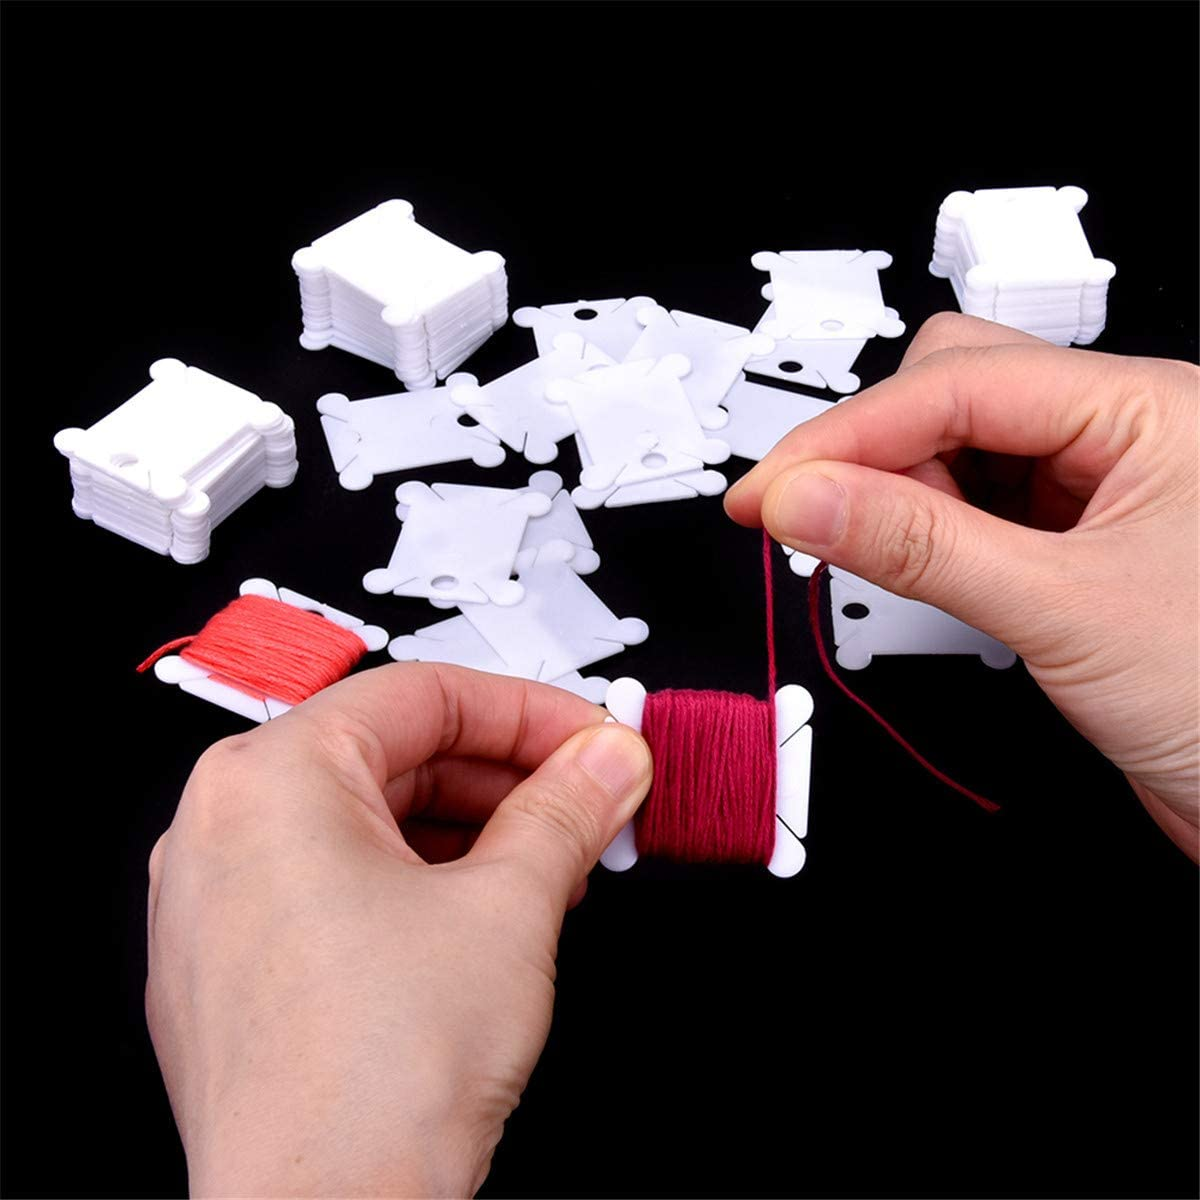 Czsycdsf 300 Pieces Plastic Floss Bobbins with Bobbin Winder for Cross Stitch Embroidery Cotton Thread Craft DIY Sewing Storage Friendship Bracelet Strings